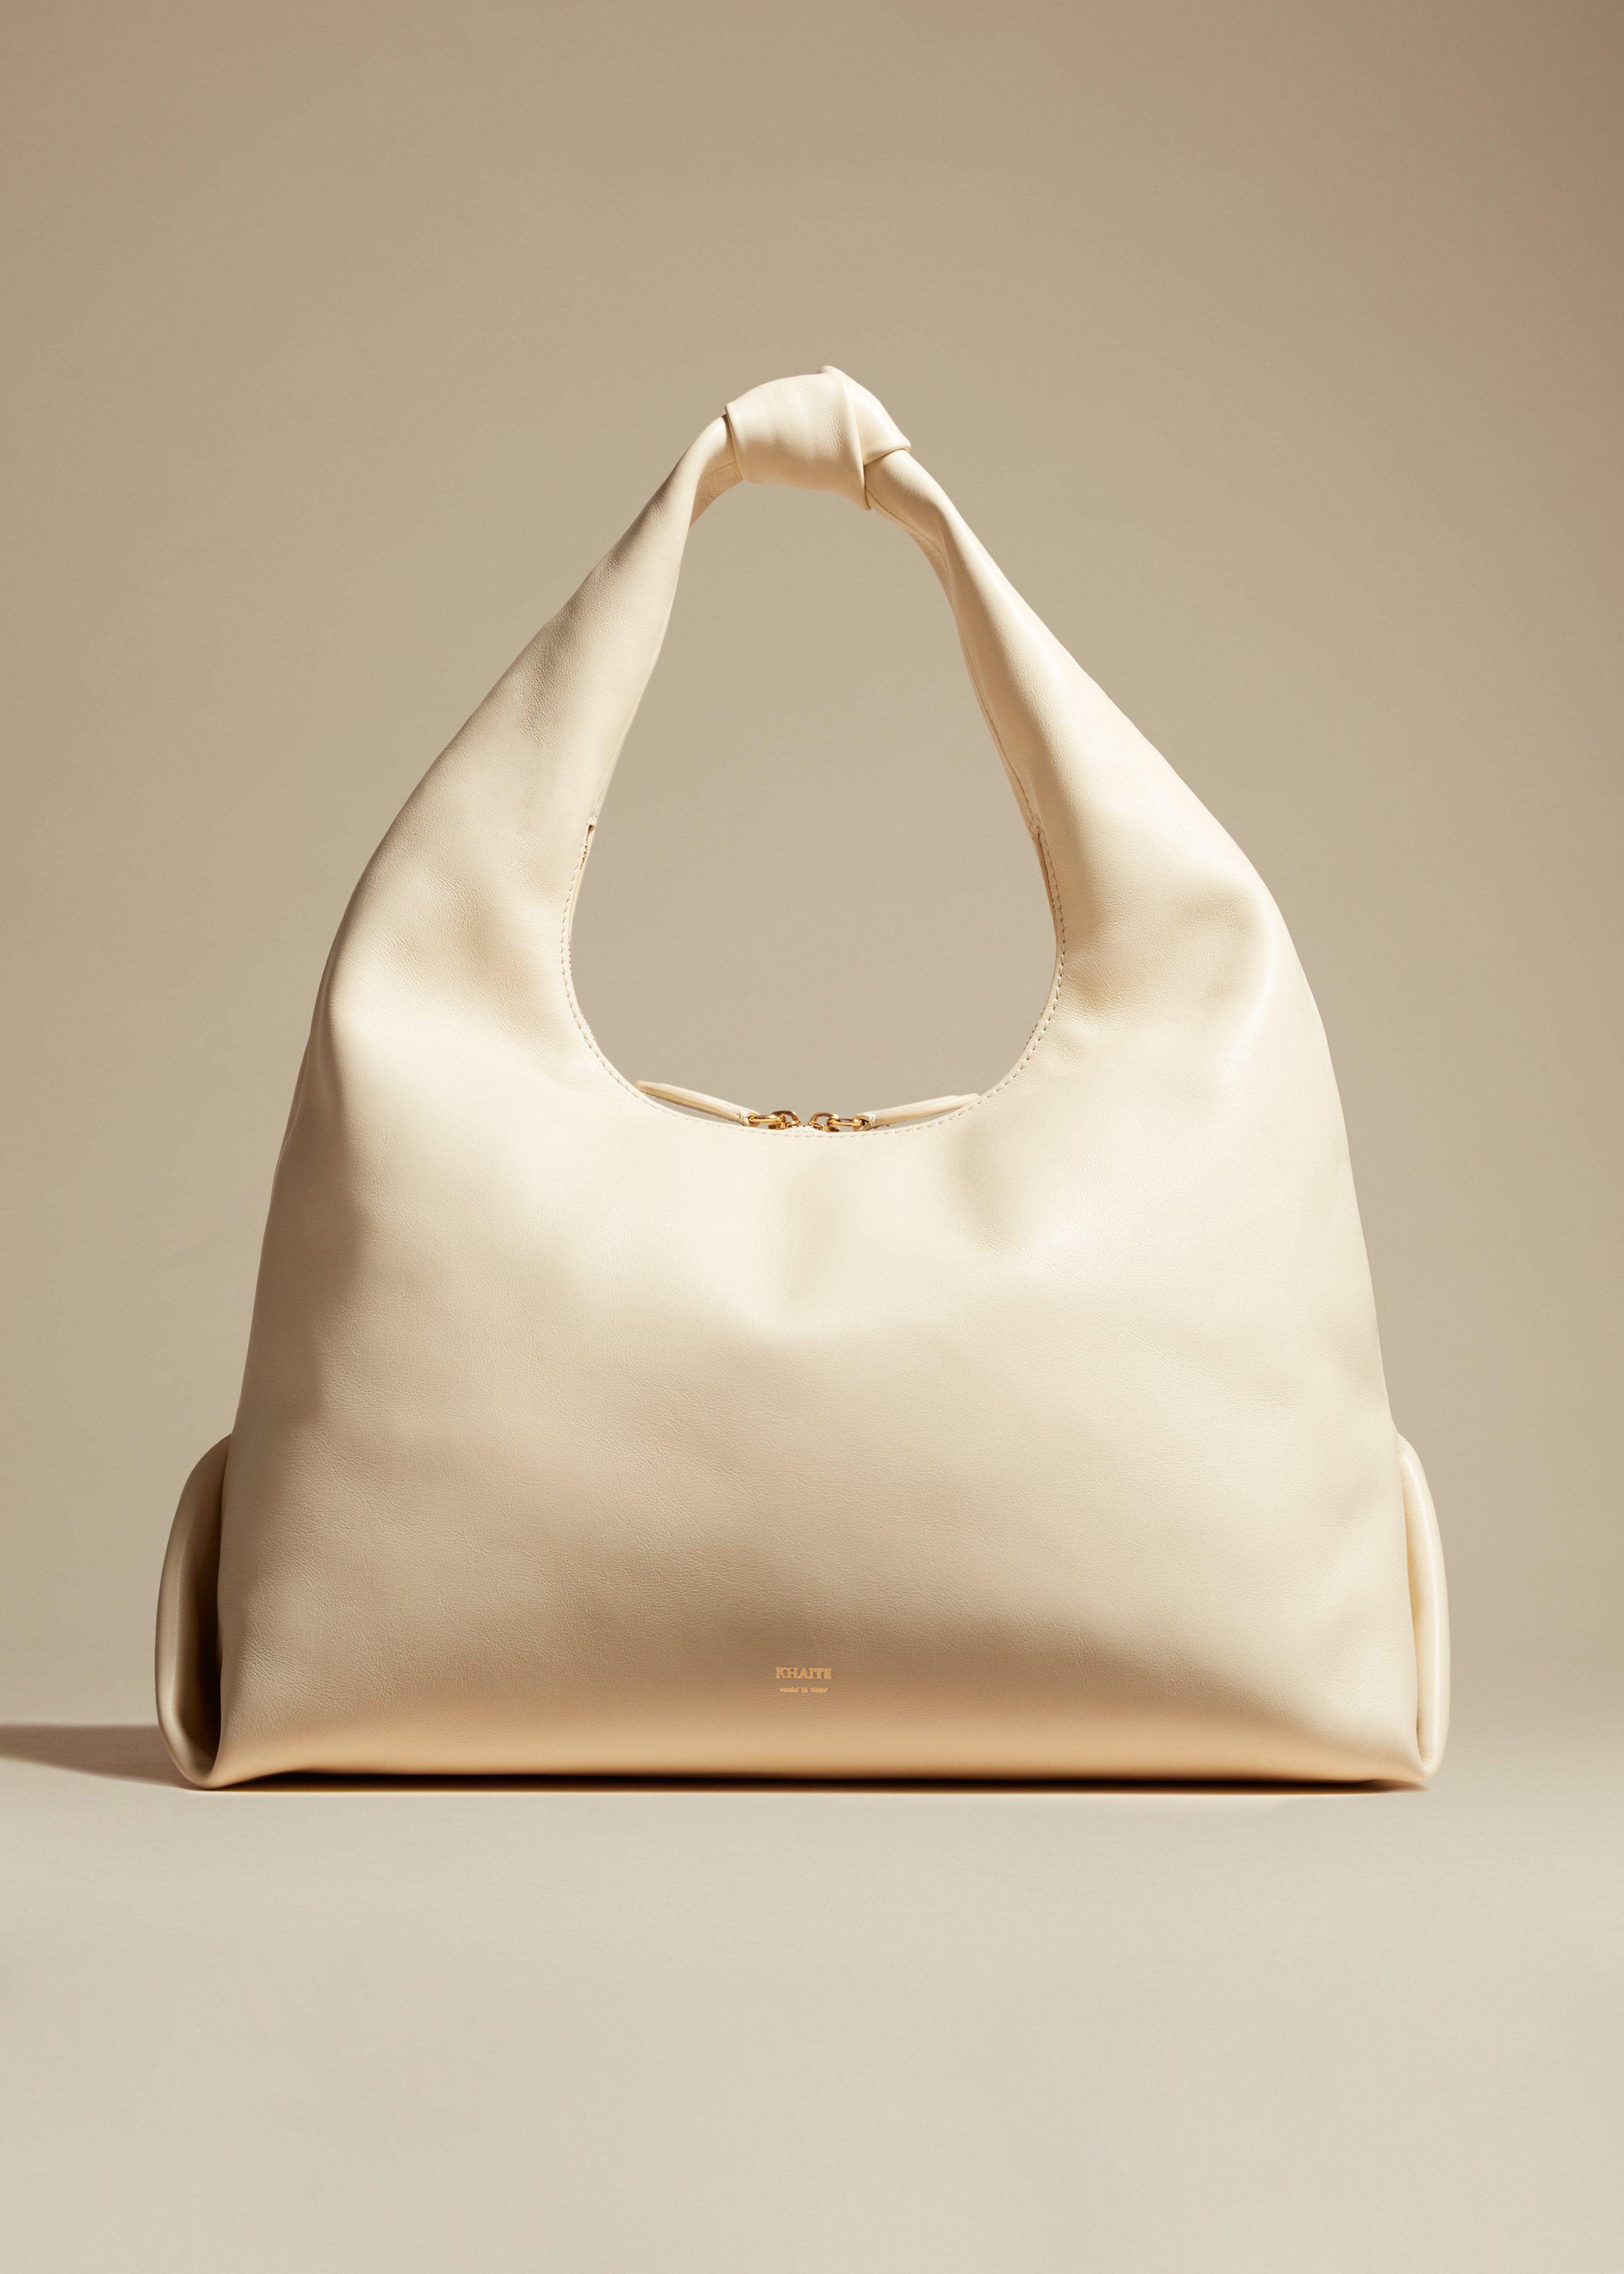 The Large Beatrice Hobo in Cream Leather